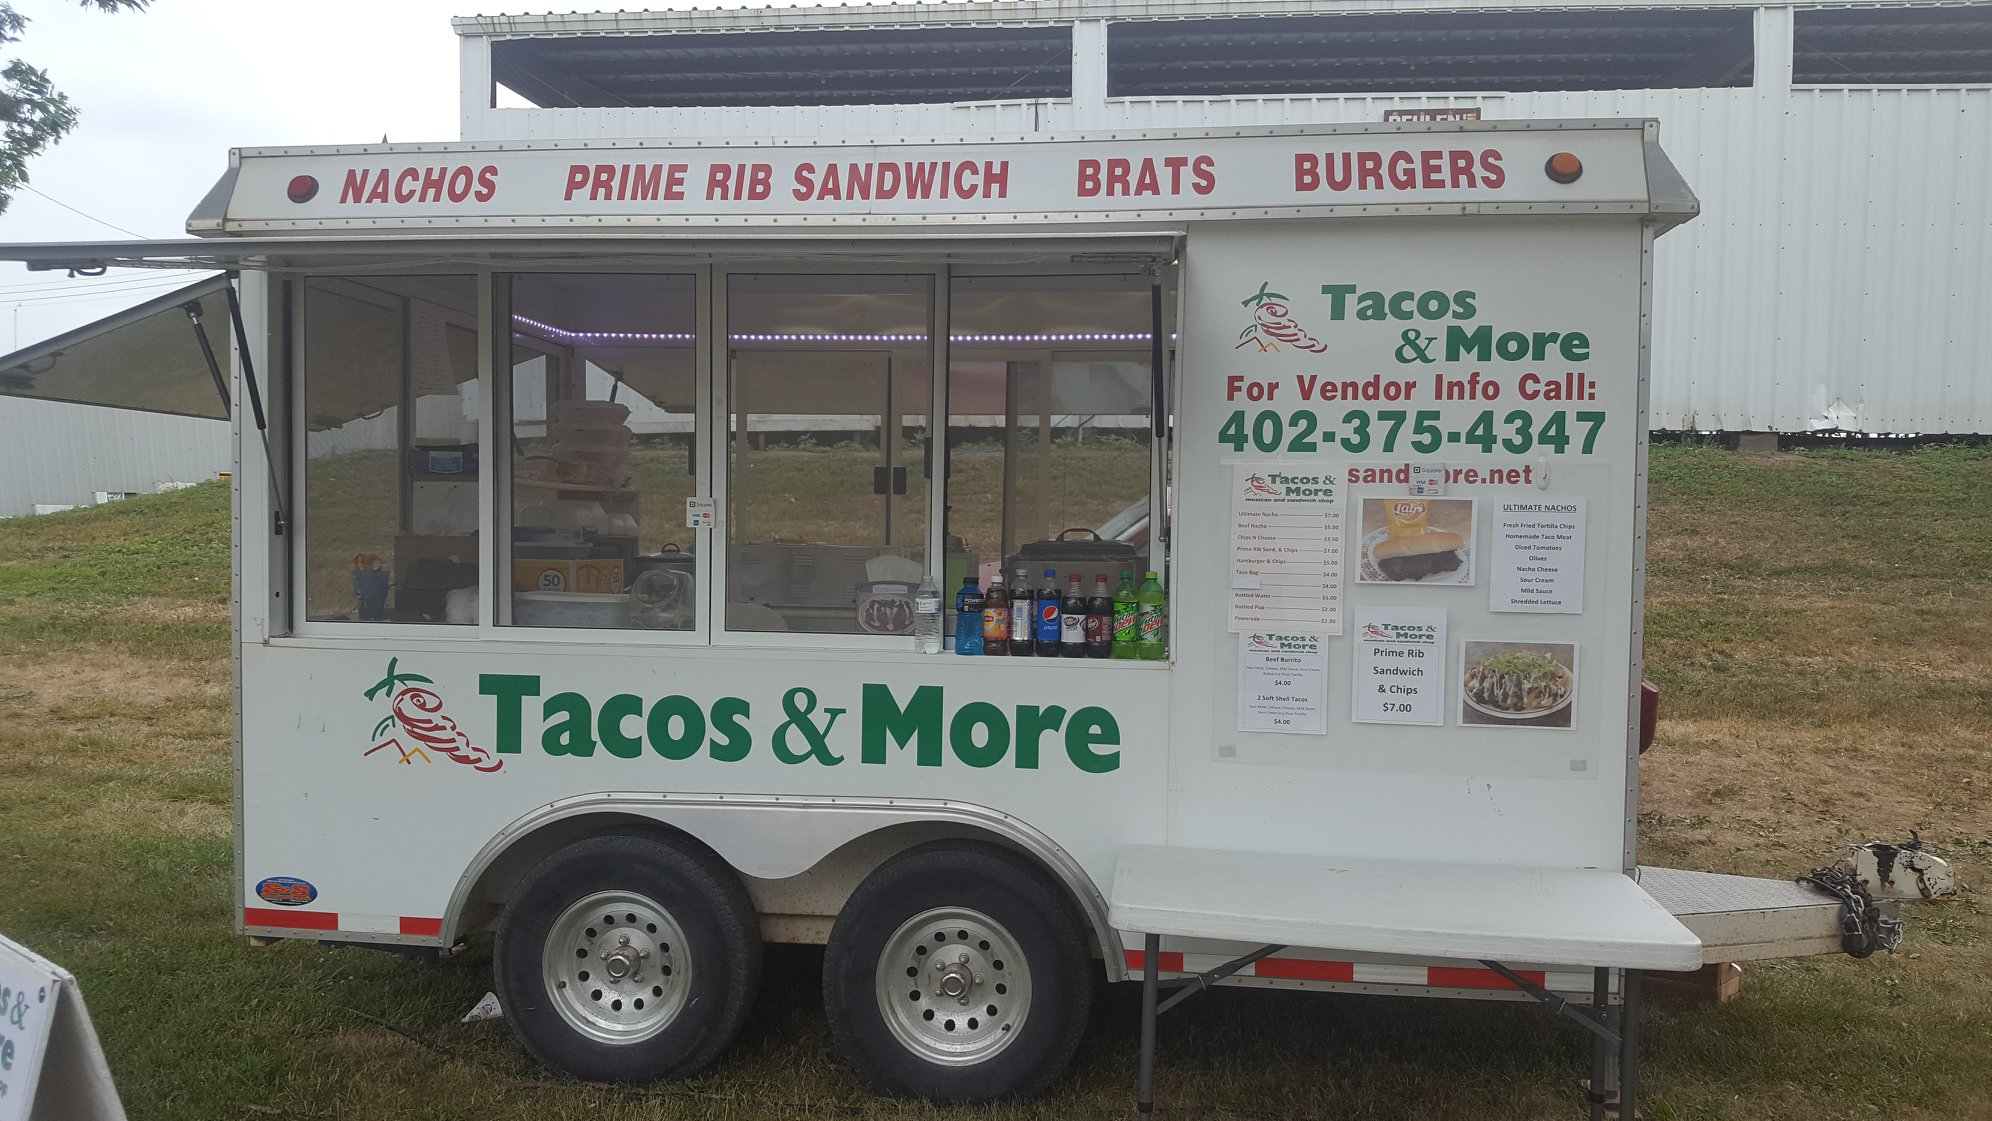 "Tacos & More Food truck with sign reading "" Nachos, Prime Rib Sandwich, Brats, Burgers"" and ""For Vendor Info Call 402-375-4347"""